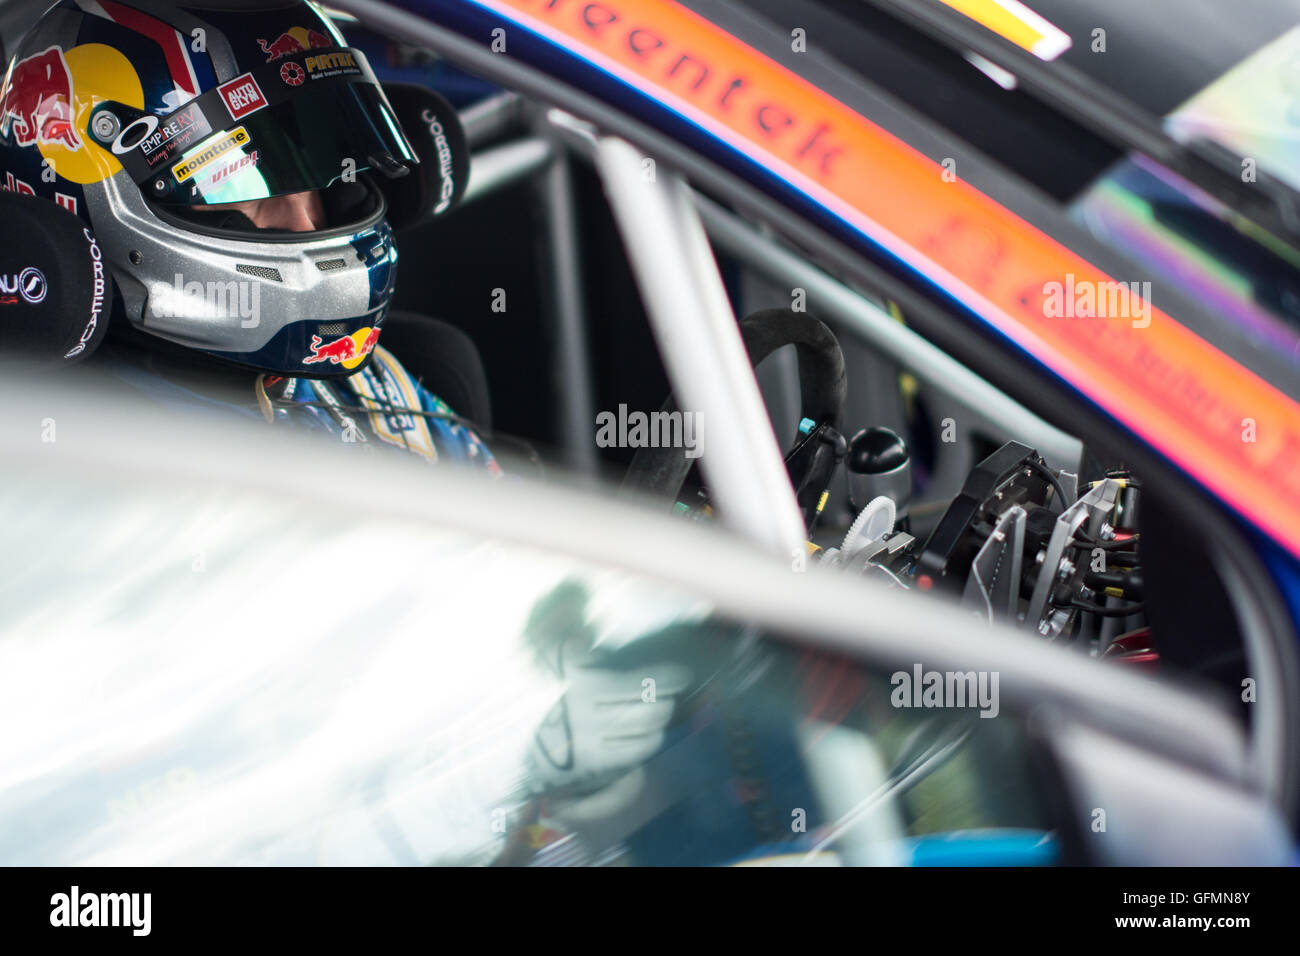 0960b7b3ebaf52 Andrew Driver Stock Photos   Andrew Driver Stock Images - Alamy